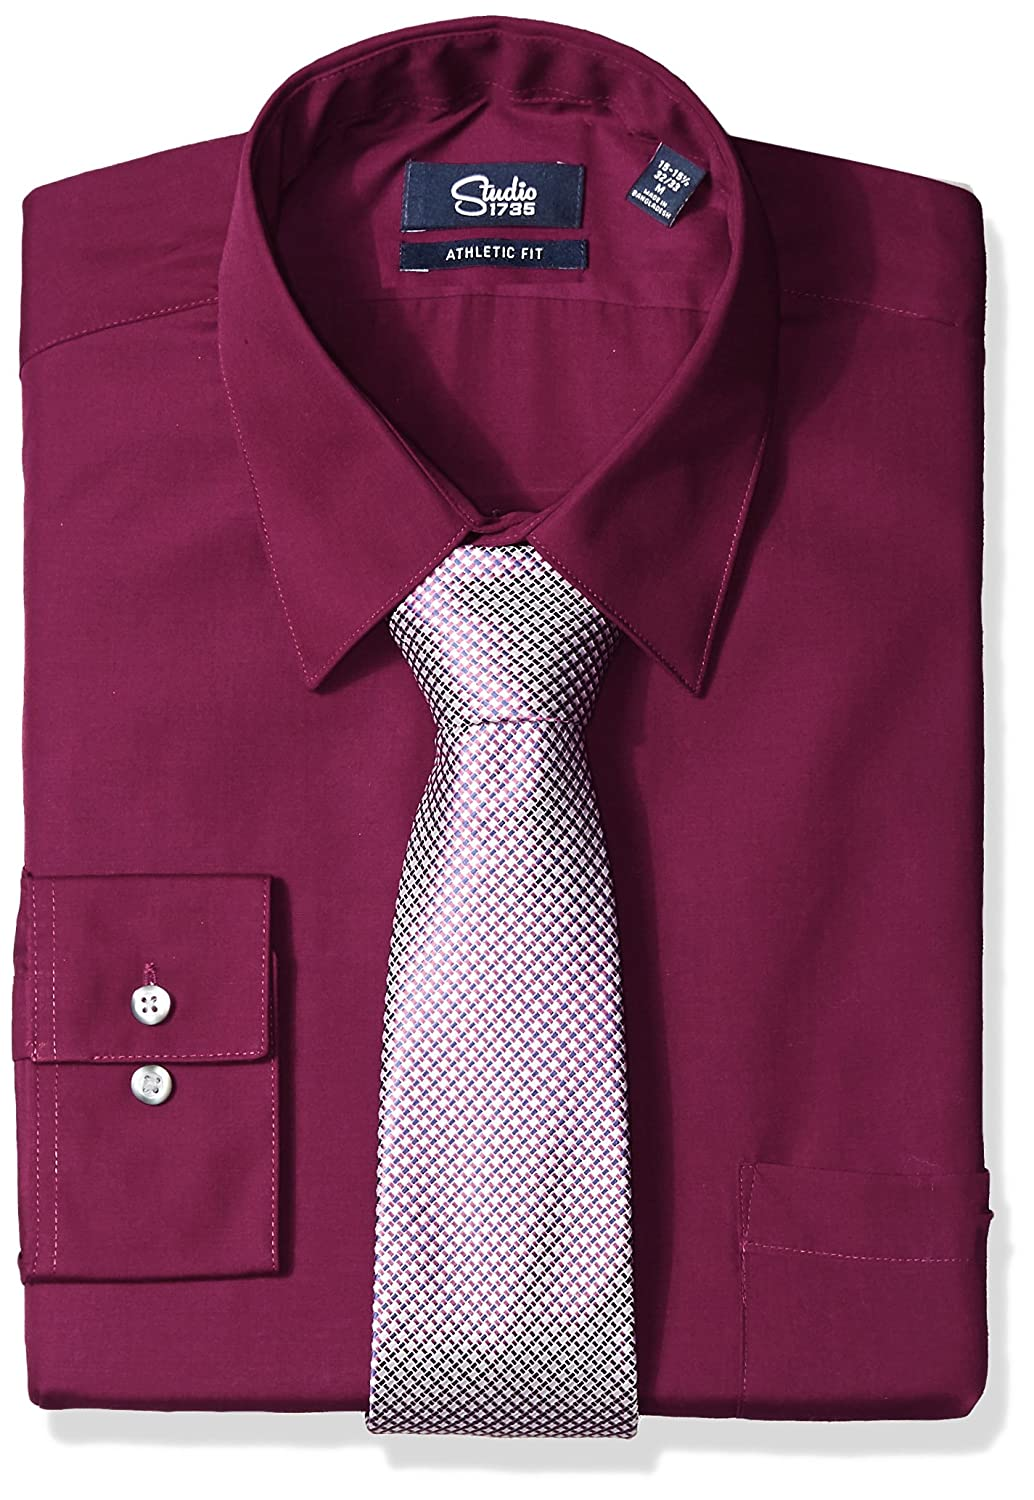 Studio 1735 Mens Dress Shirts And Tie Combo Neat Tie Athletic Fit At